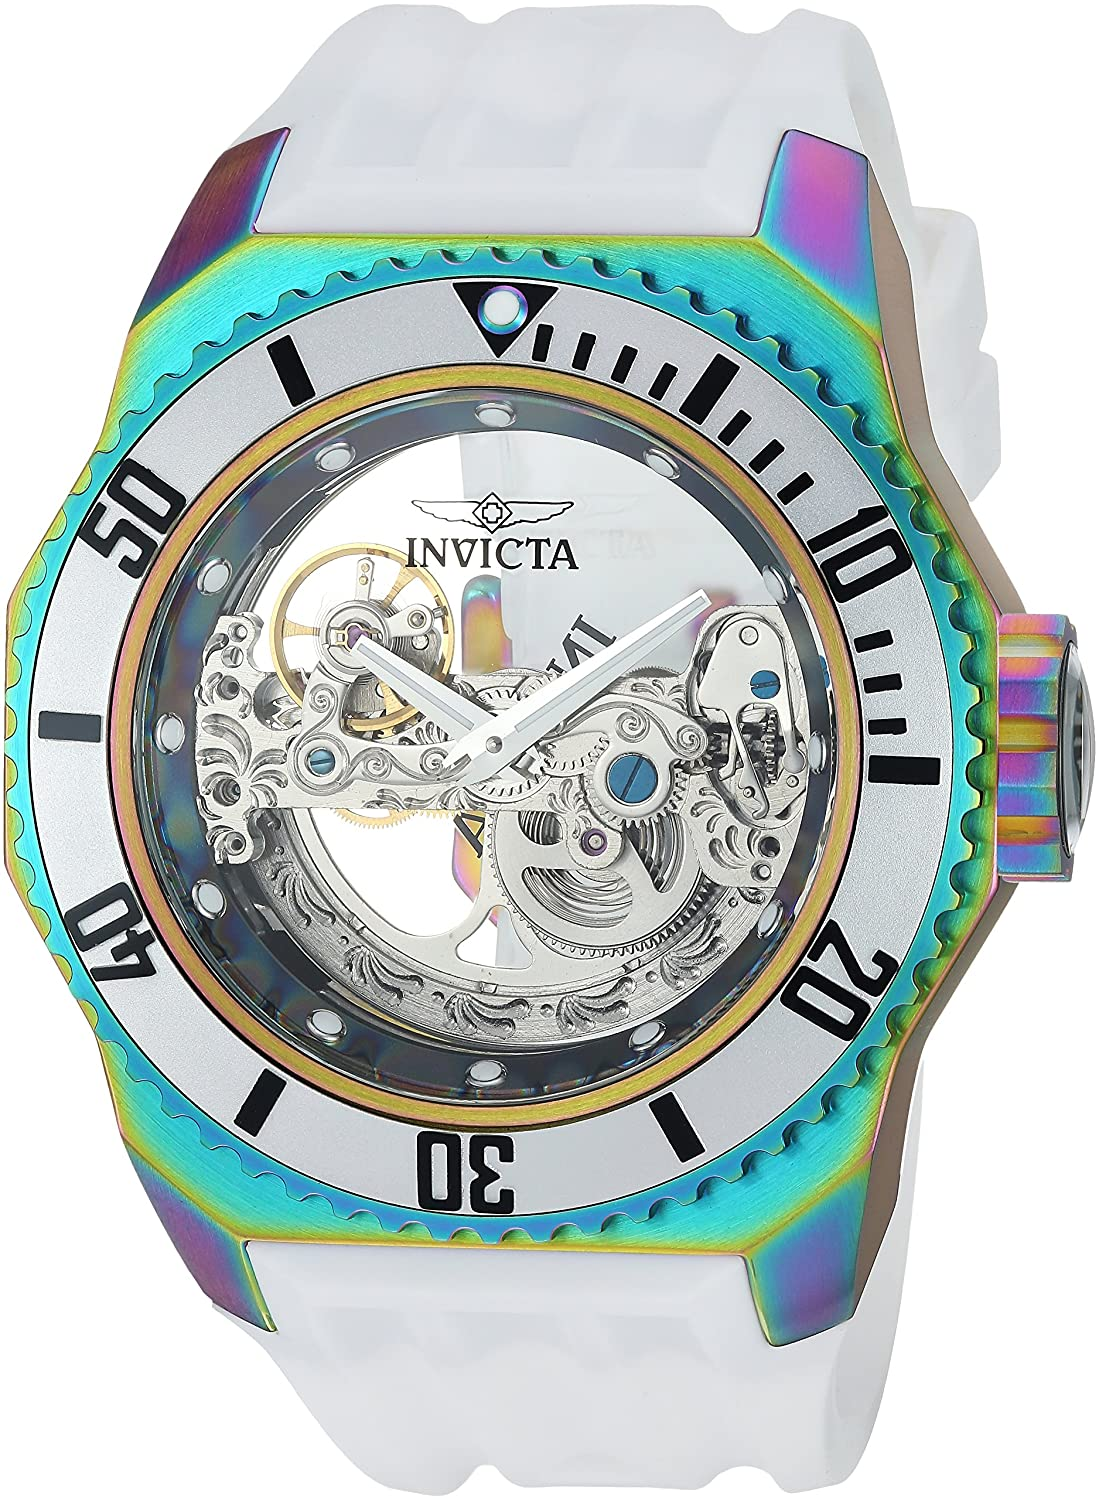 Invicta Men 's ' Russian Diver ' Automaticステンレススチールand Silicone Casual Watch, Color : White (Model : 25629 ) B0796DB7HL